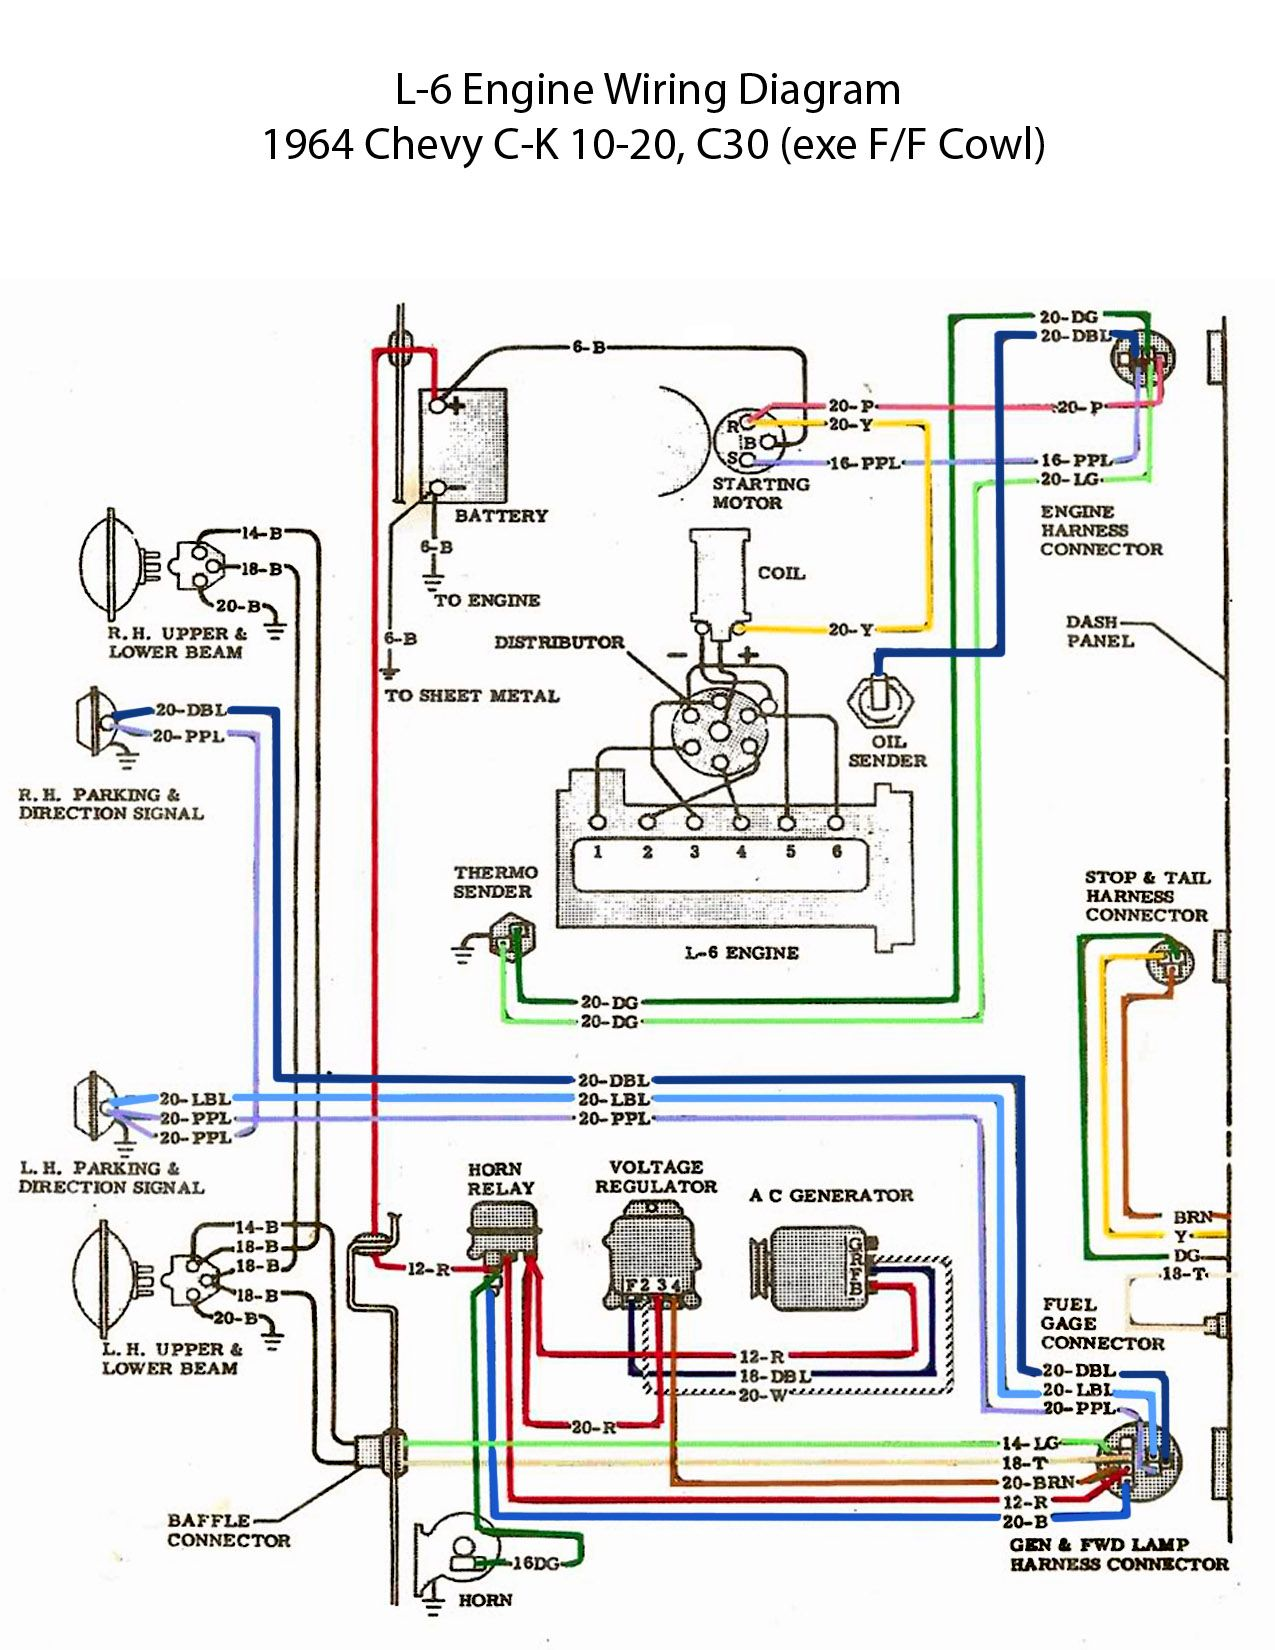 Electric L 6 Engine Wiring Diagram '60s Chevy C10 Wiring Mazda 5 Engine  Diagram Visual 90 Rx7 Wiring Diagram